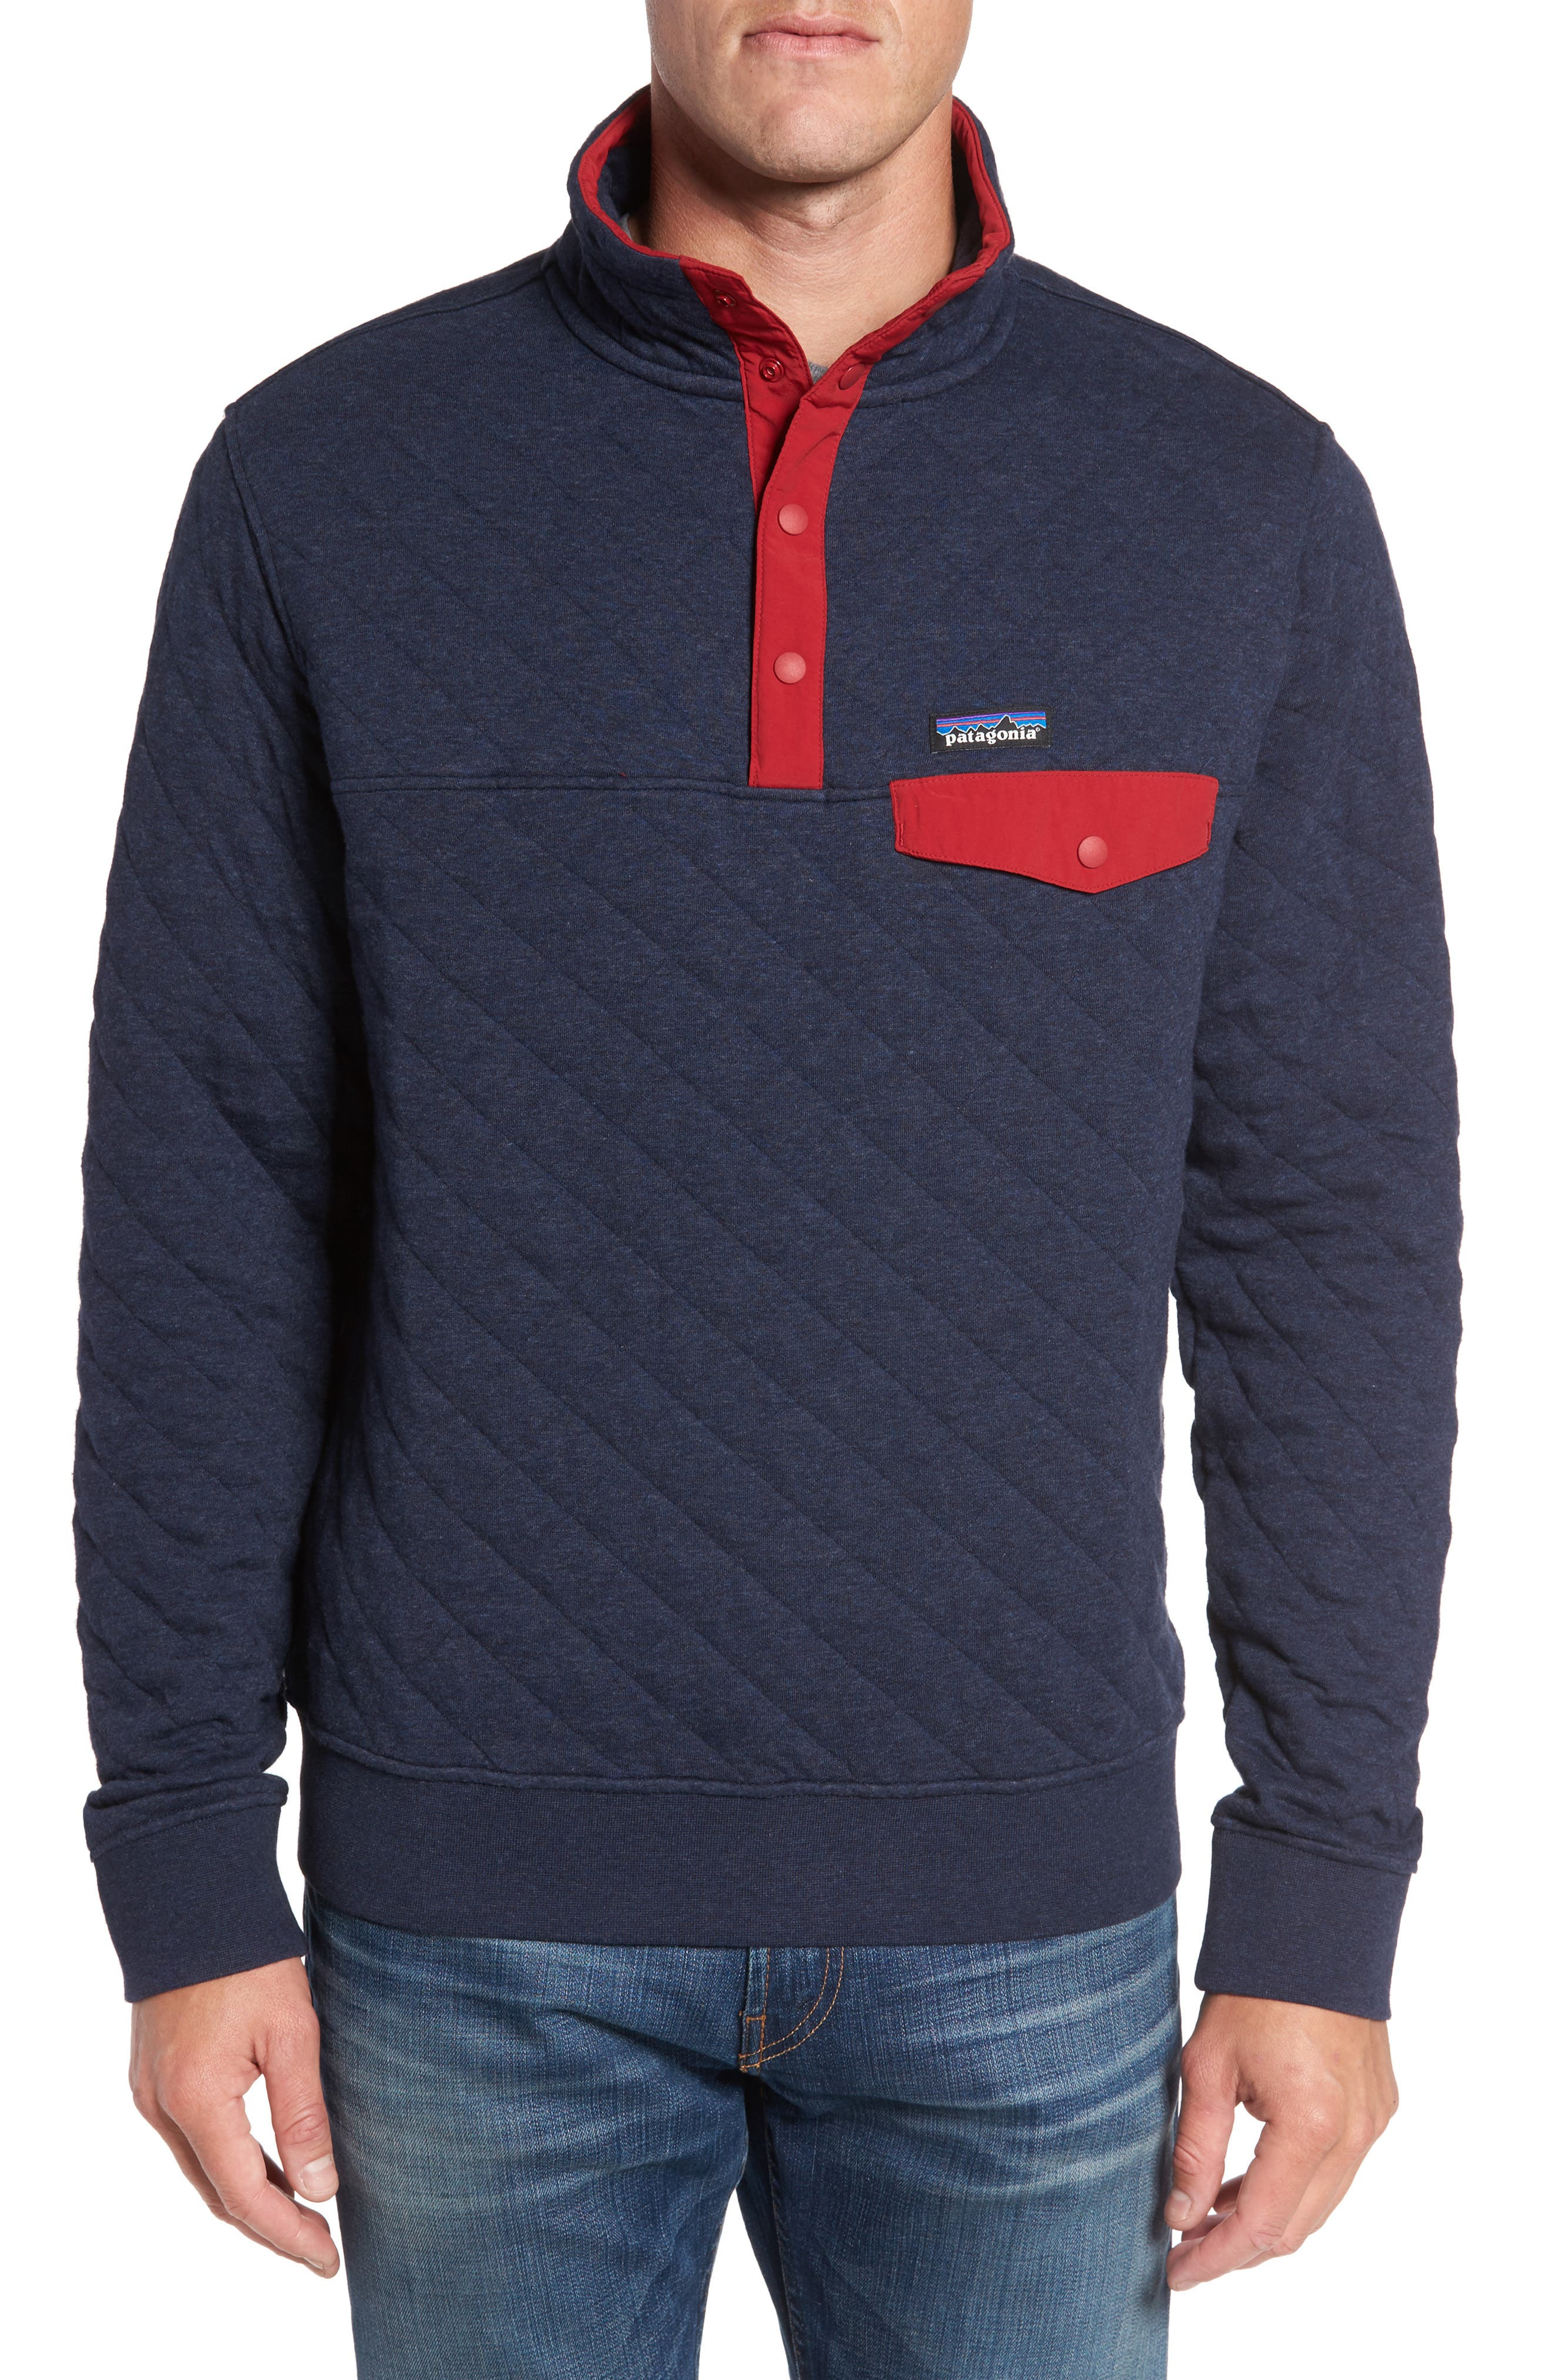 Alternate Image 1 Selected - Patagonia Snap-T Quilted Fleece Pullover